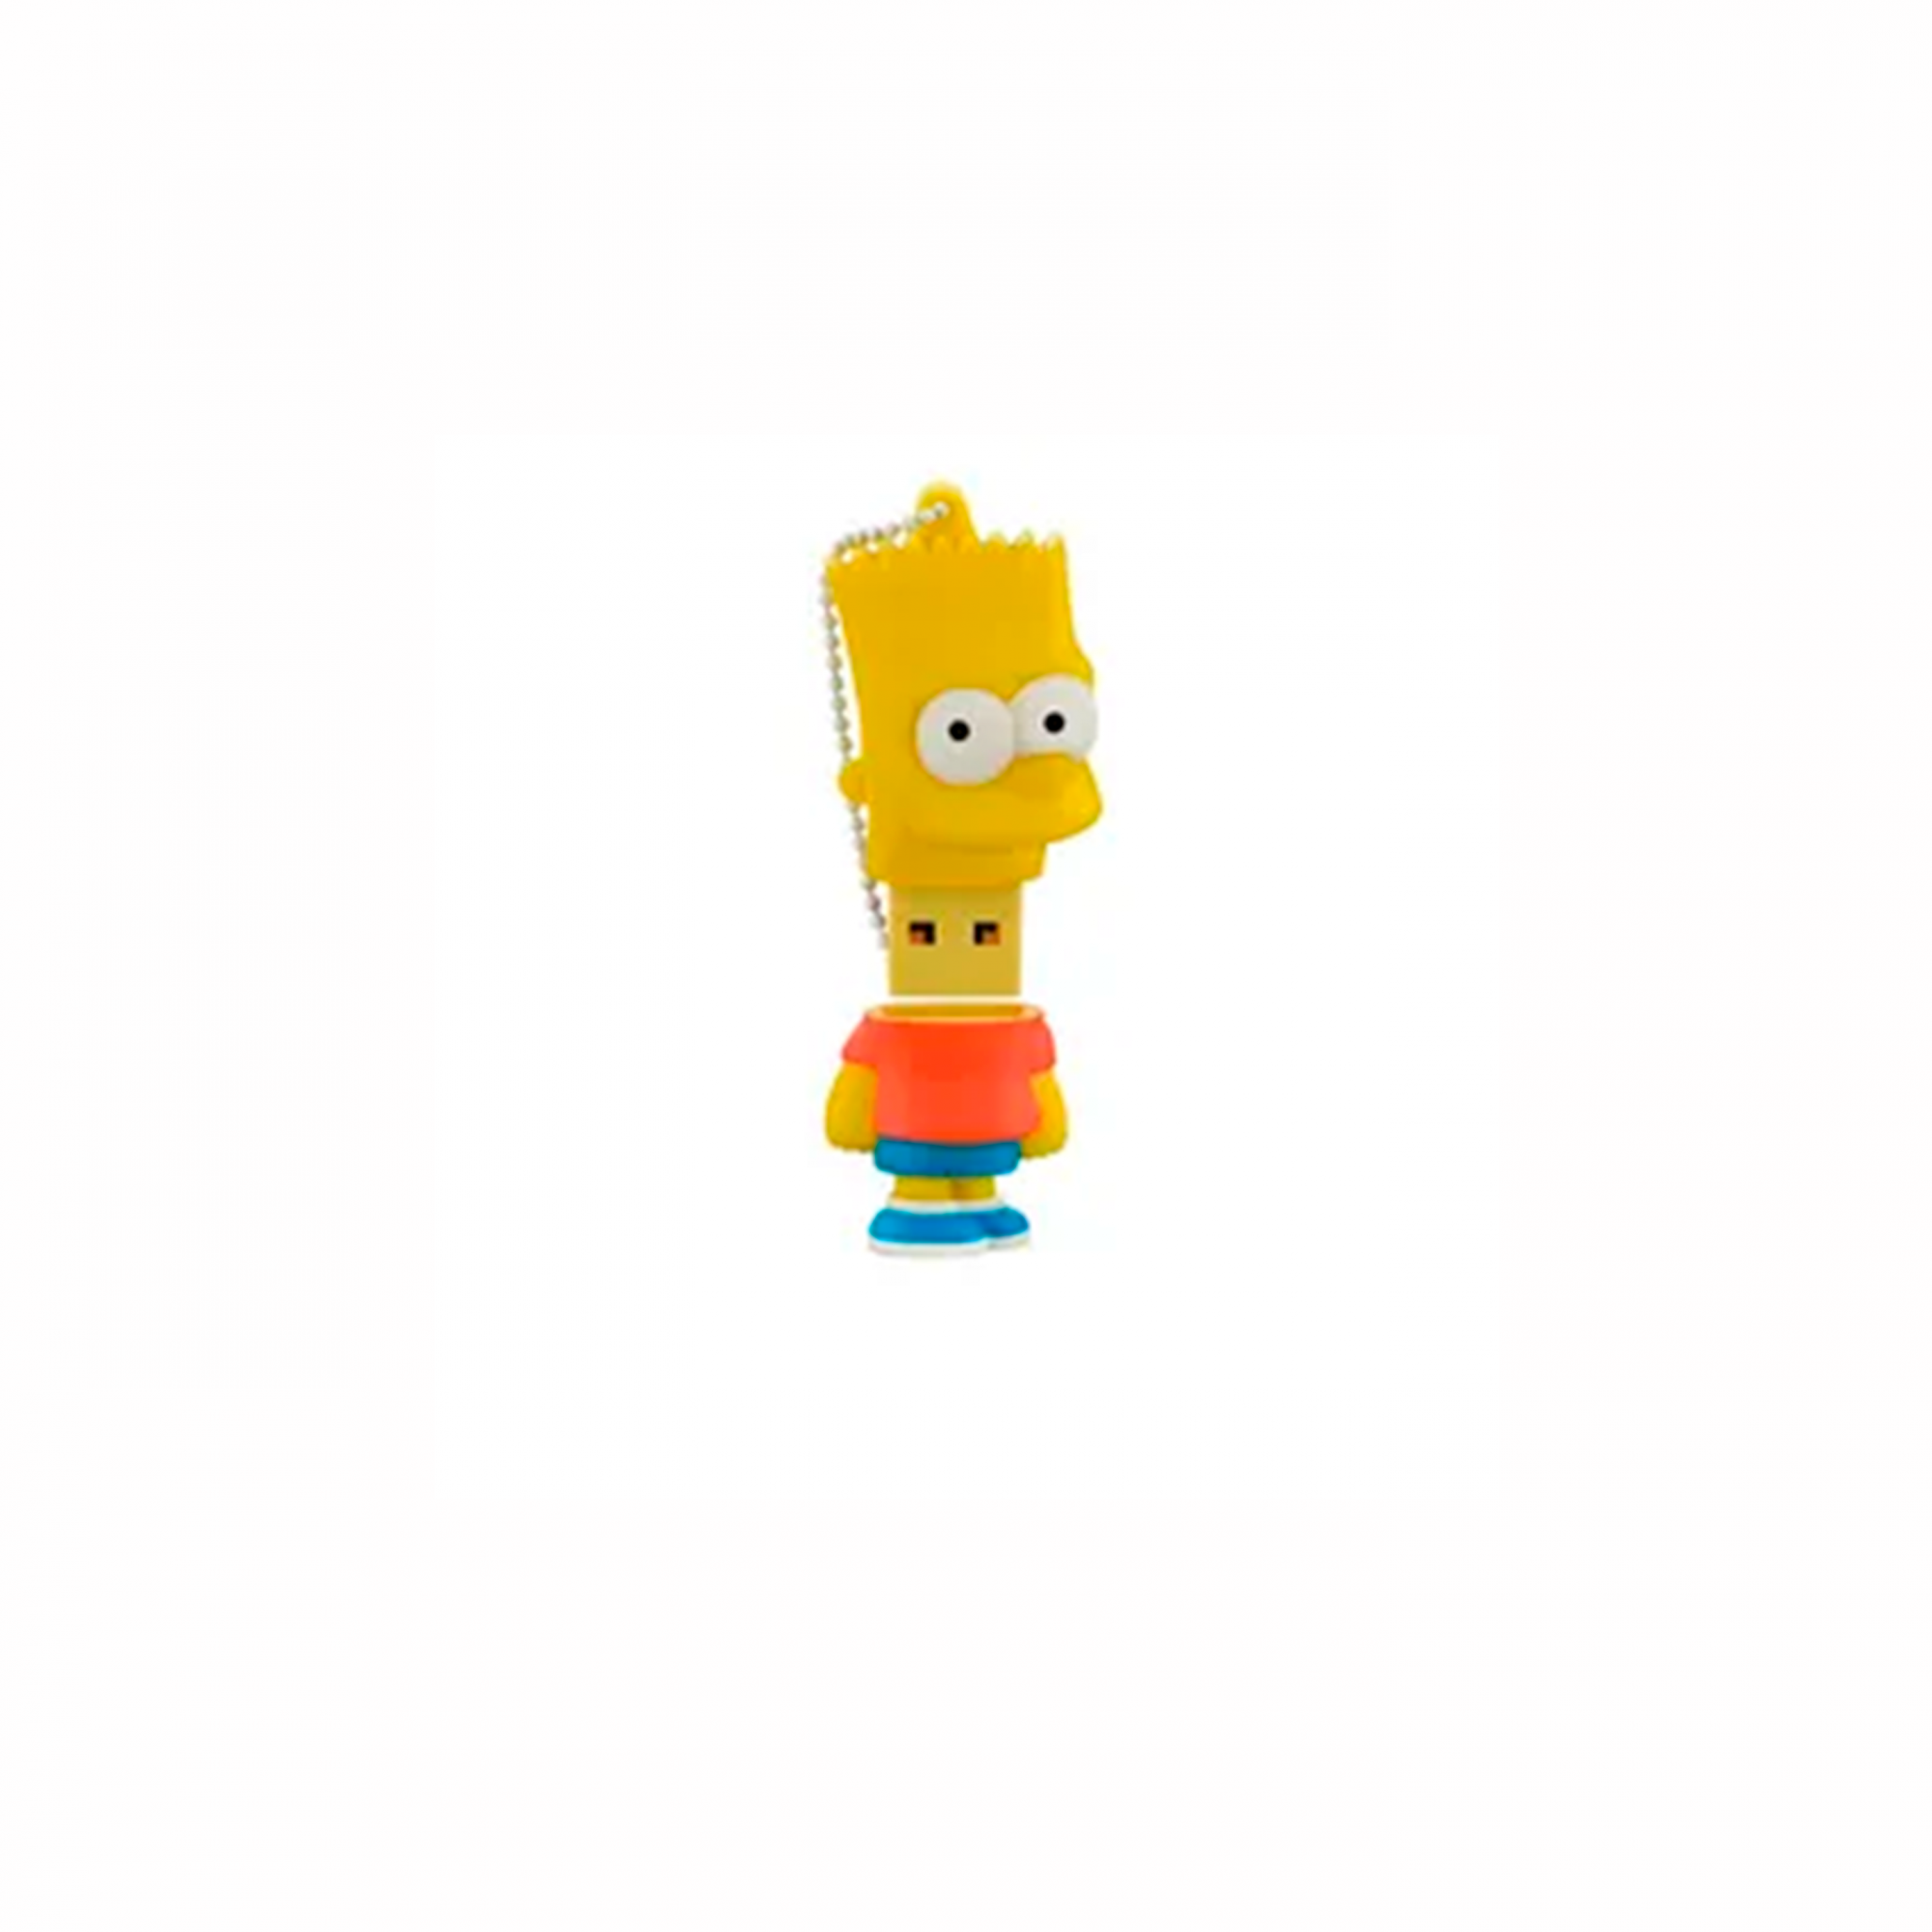 PENDRIVE SIMPSONS BART 8GB PD071 MULTILASER